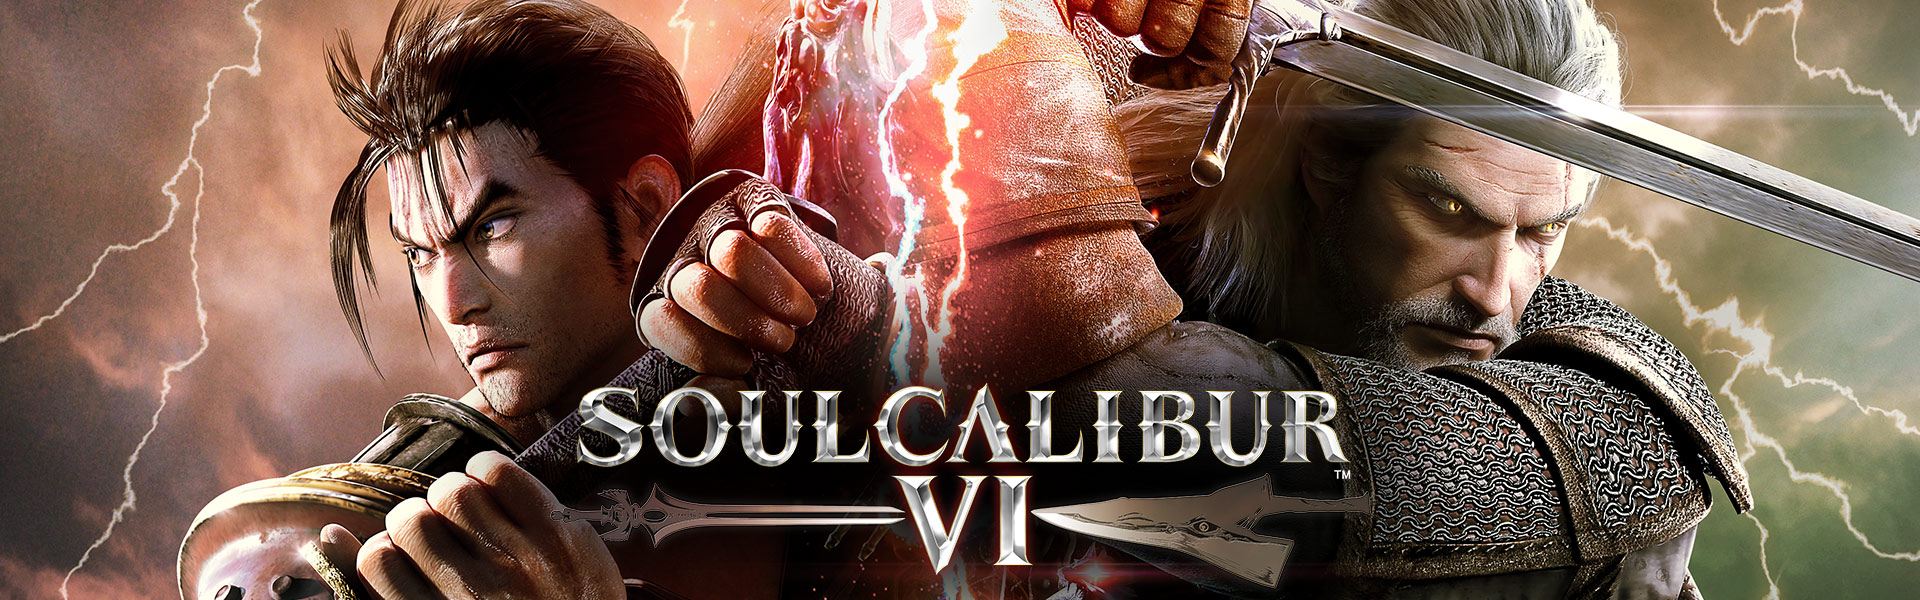 Soulcalibur VI, Heishiro Mitsurugi and Geralt of Rivia back to back with swords drawn